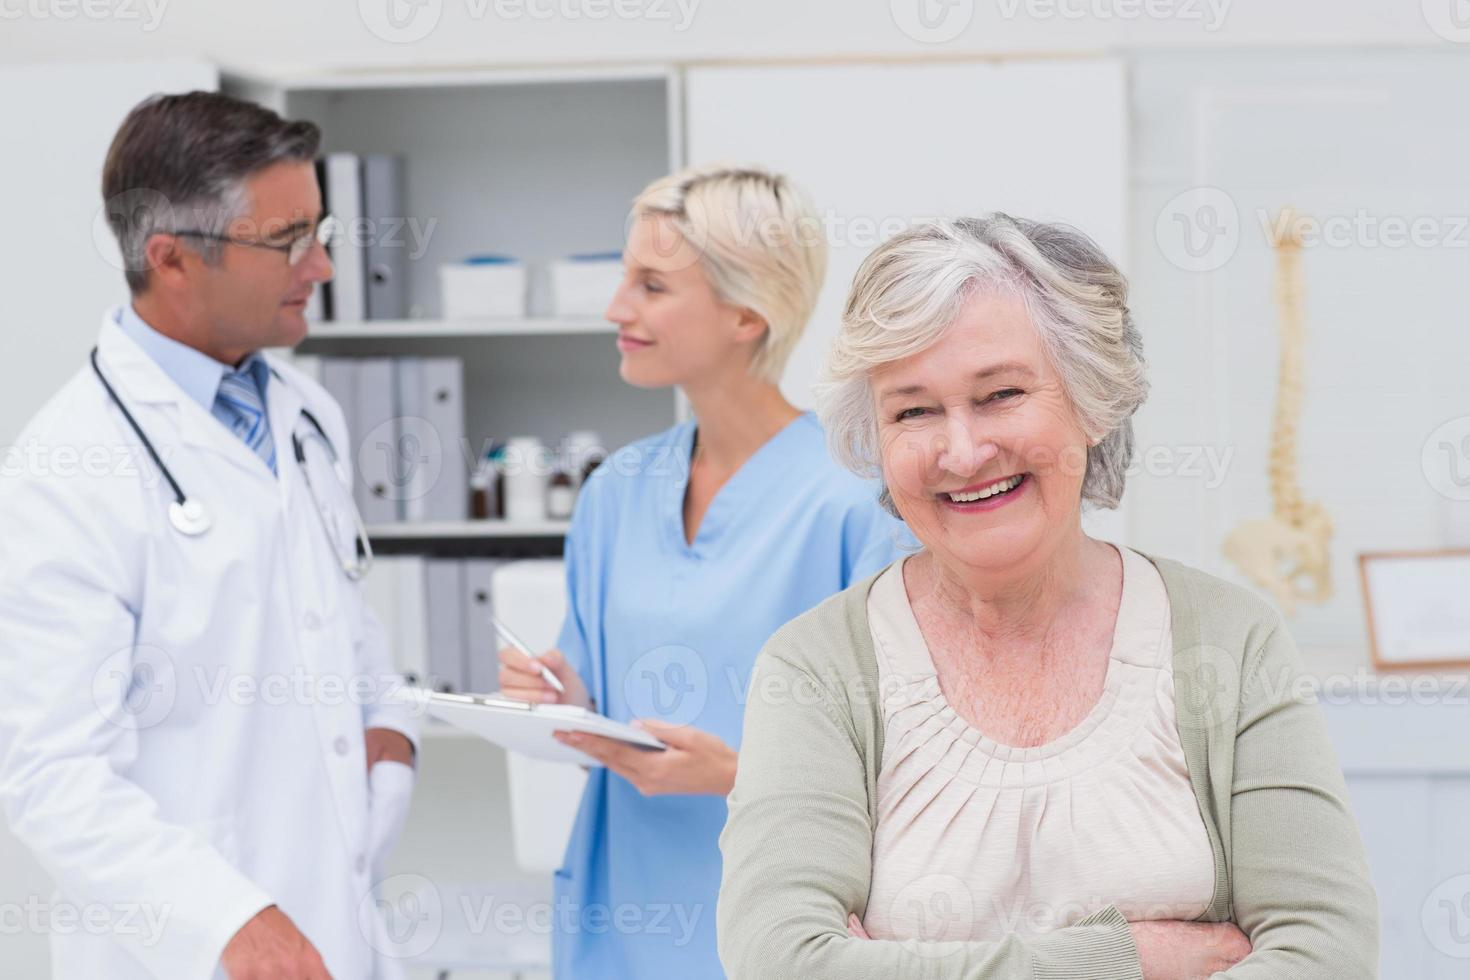 Patient smiling while doctor and nurse discussing in background photo